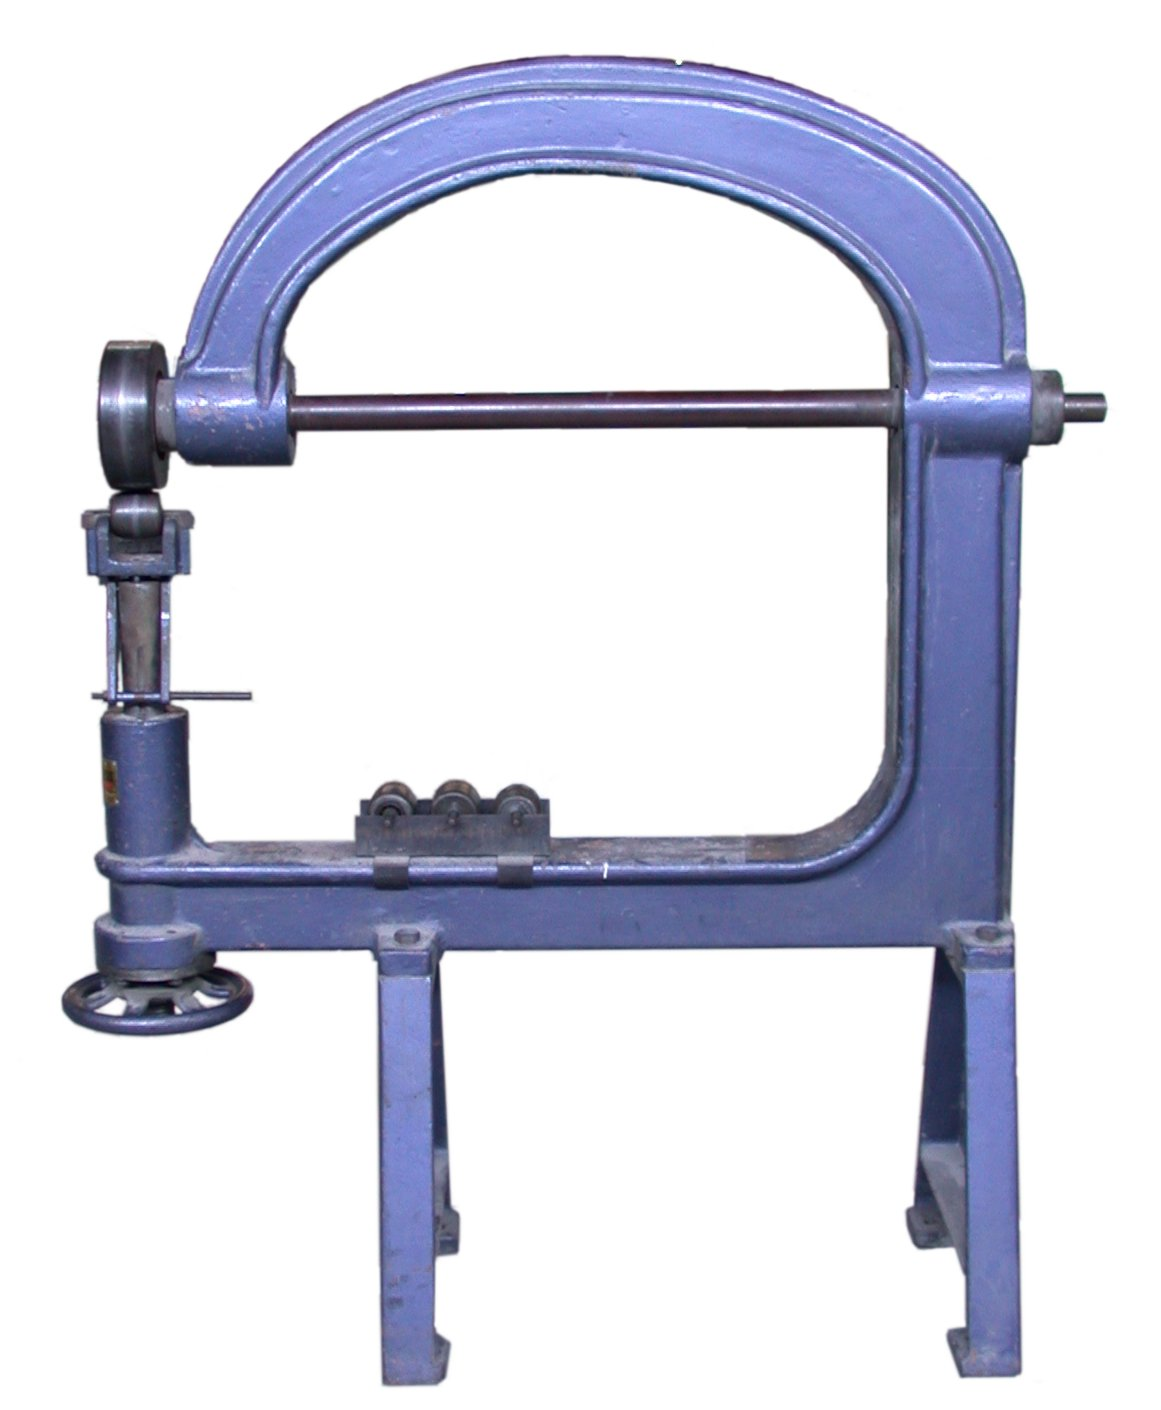 An English wheeling machine. Using this it is possible for the body fabricator to create compound curves in sheet metal such as aluminium. (Picture courtesy Wikipedia).